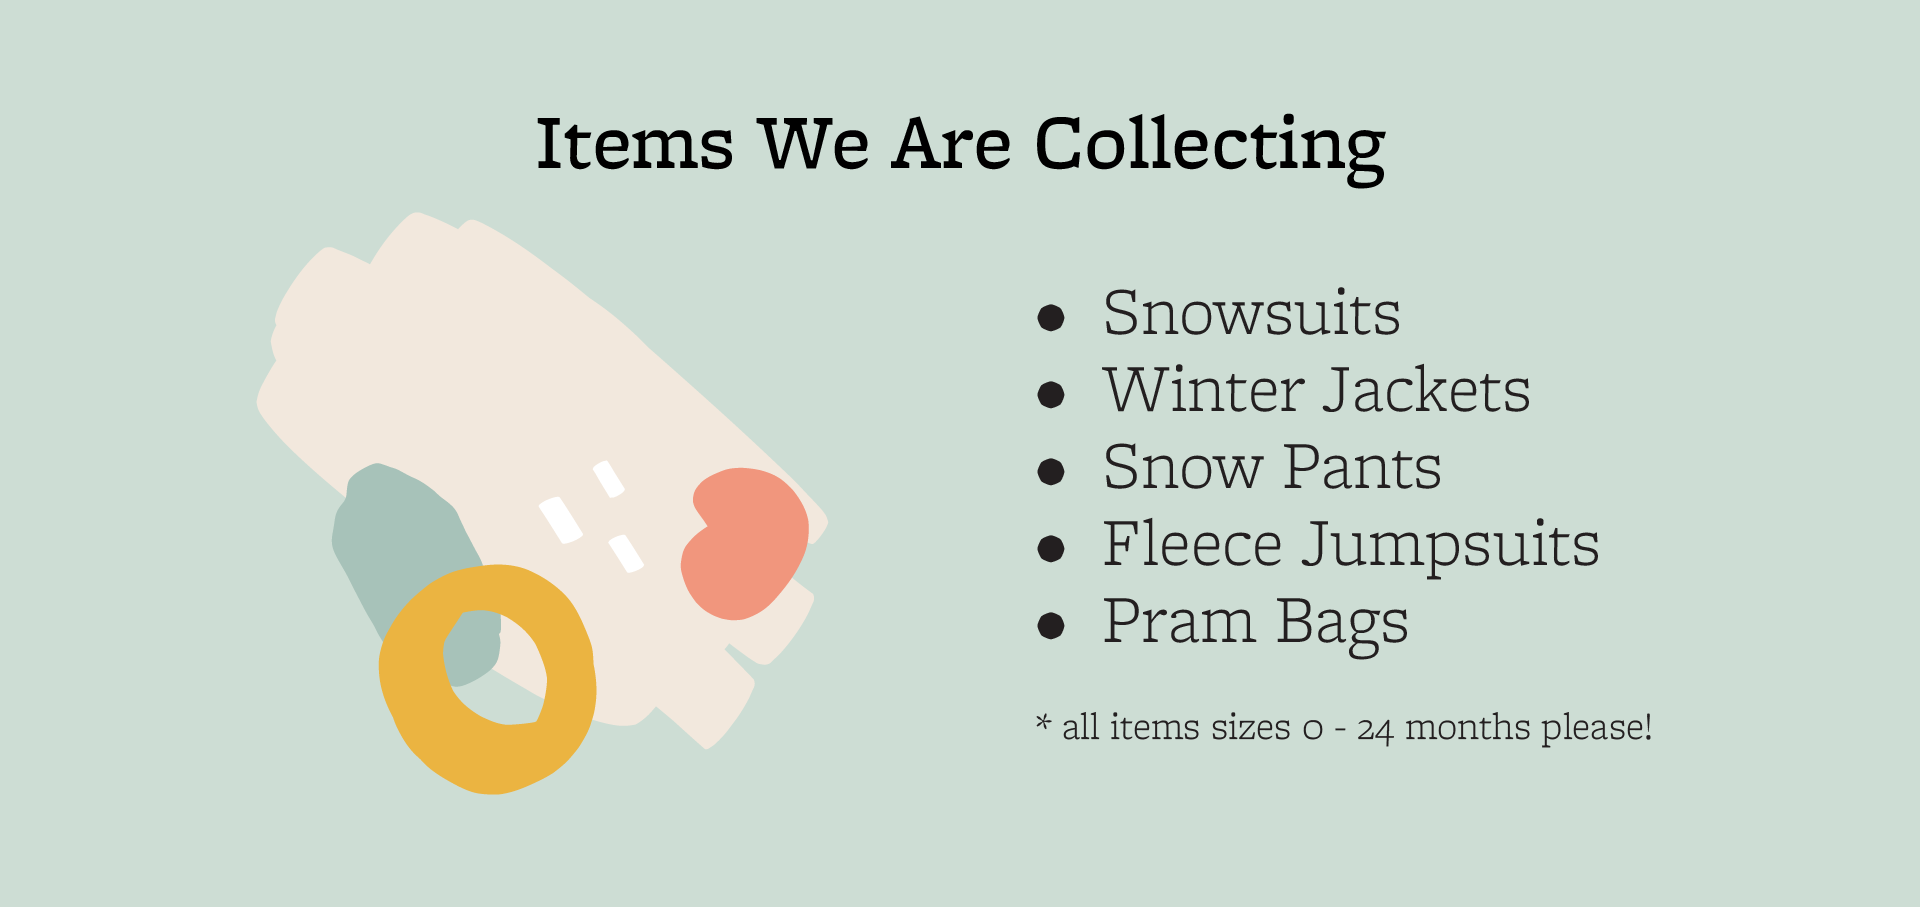 List of items collected at BabyGoRound's Winter Drive